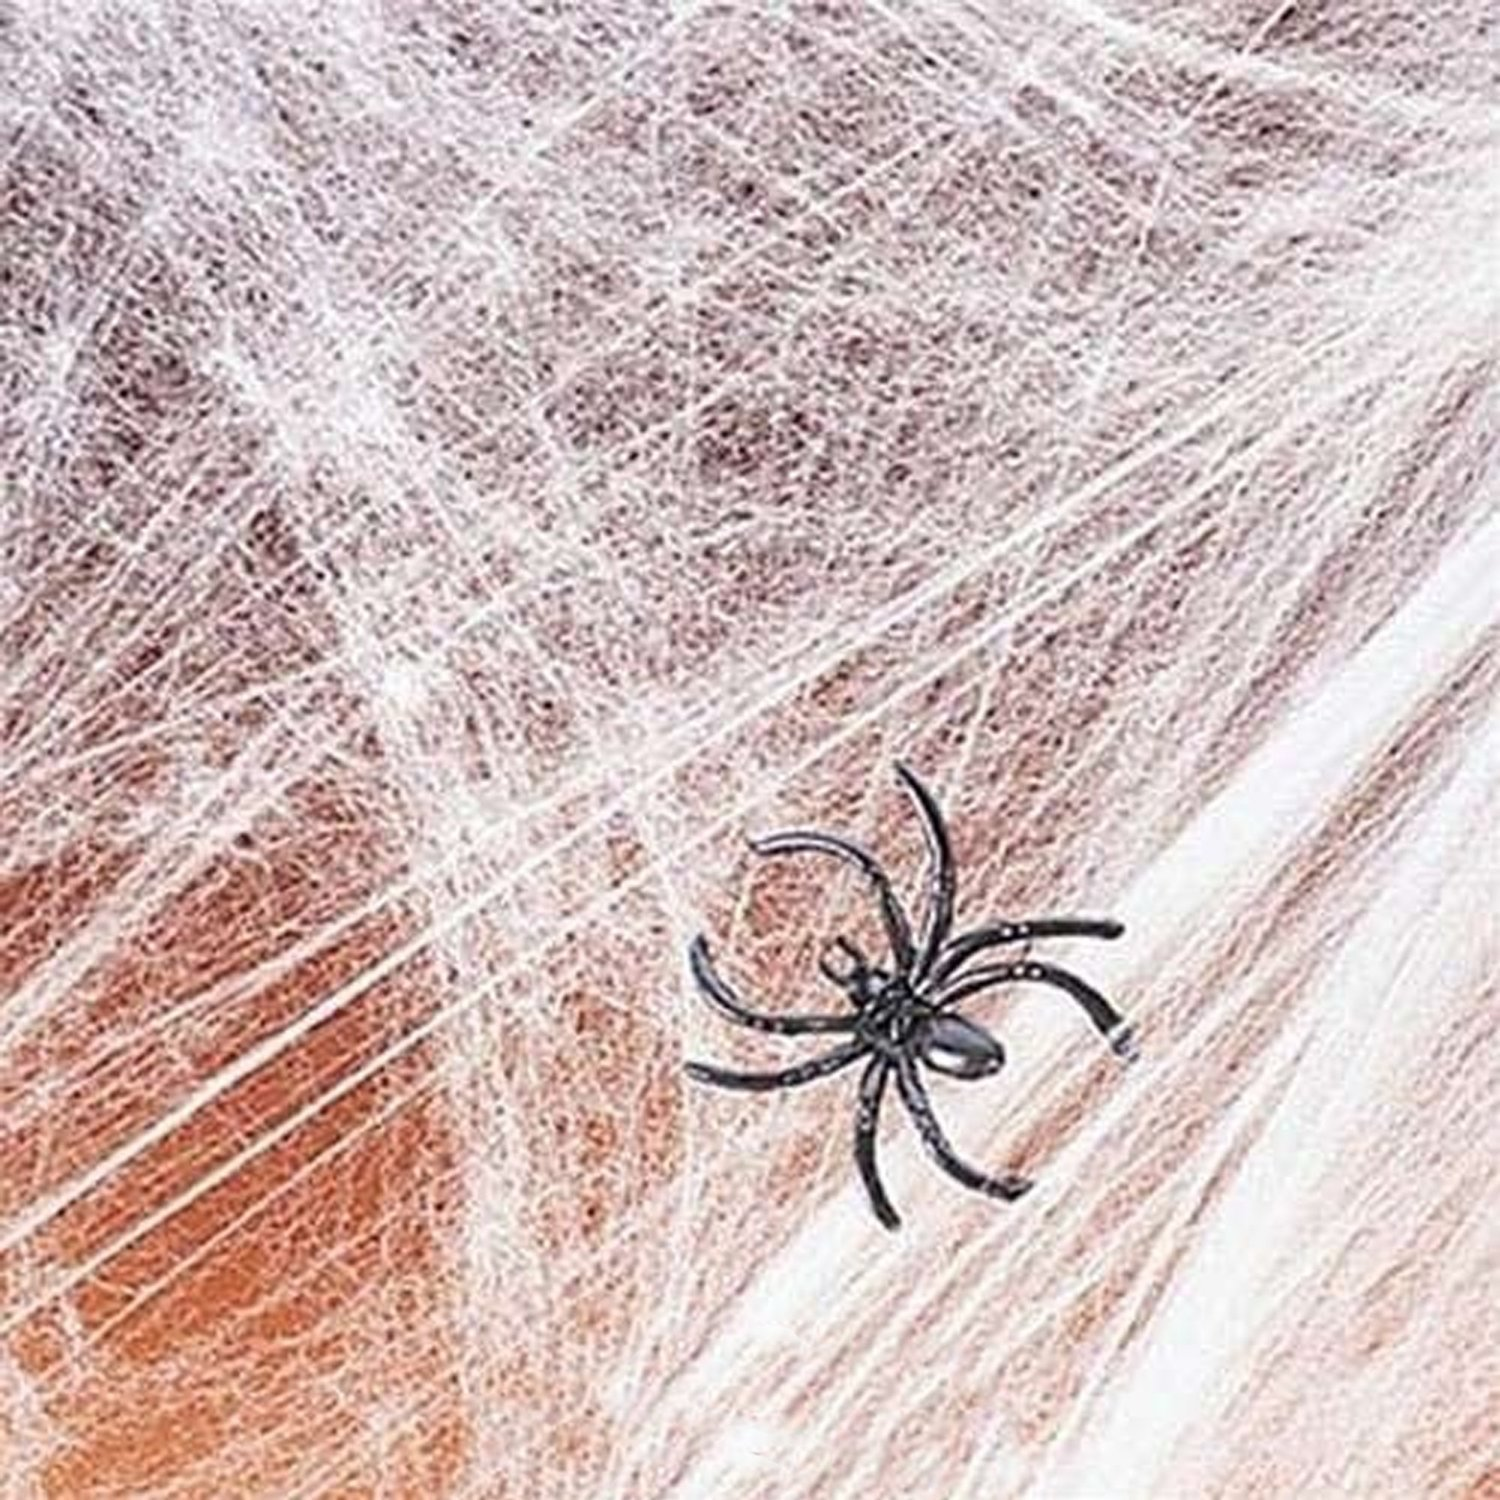 amazoncom yazycraft spider webs webbing cobwebs halloween decorations spiderweb - Halloween Spider Web Decorations